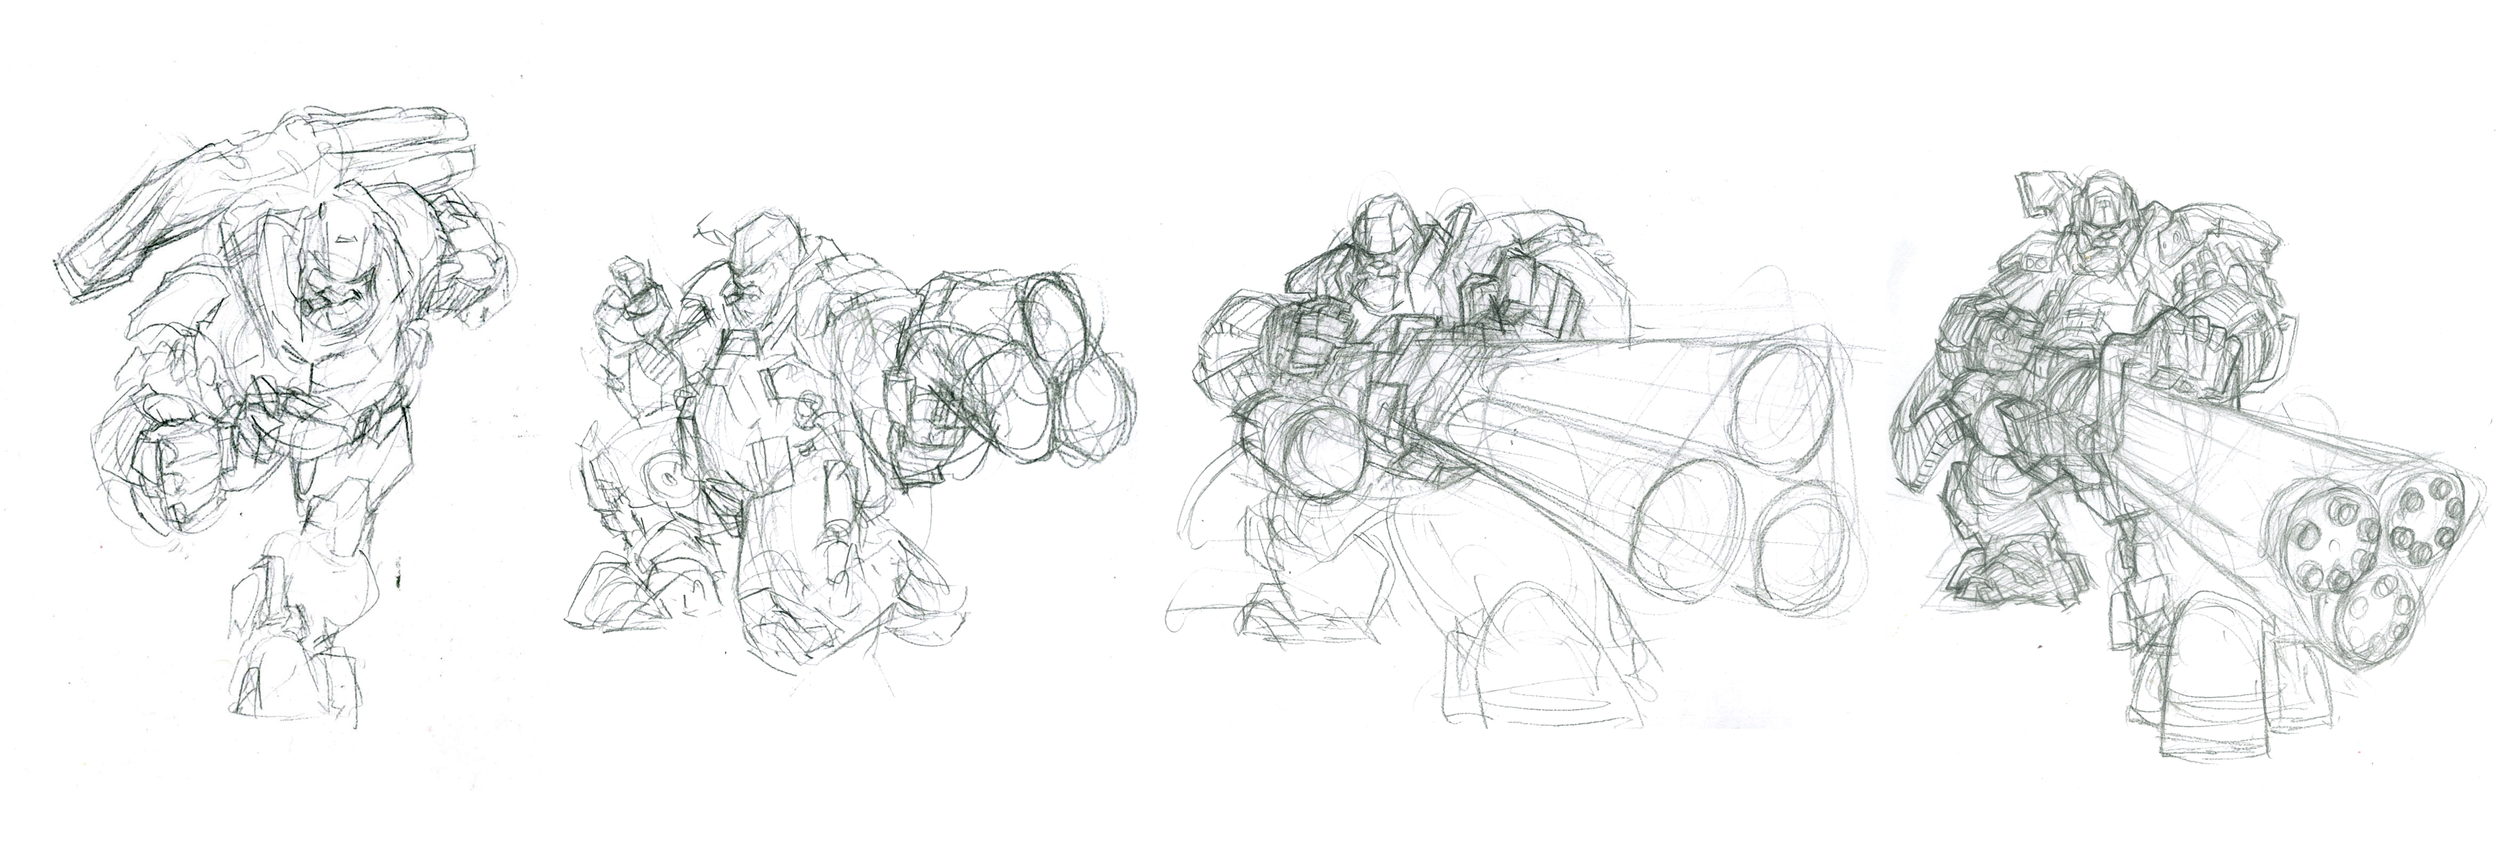 The first round of quick sketches for Hound. I wanted to put the gatling gun in sooooo bad.